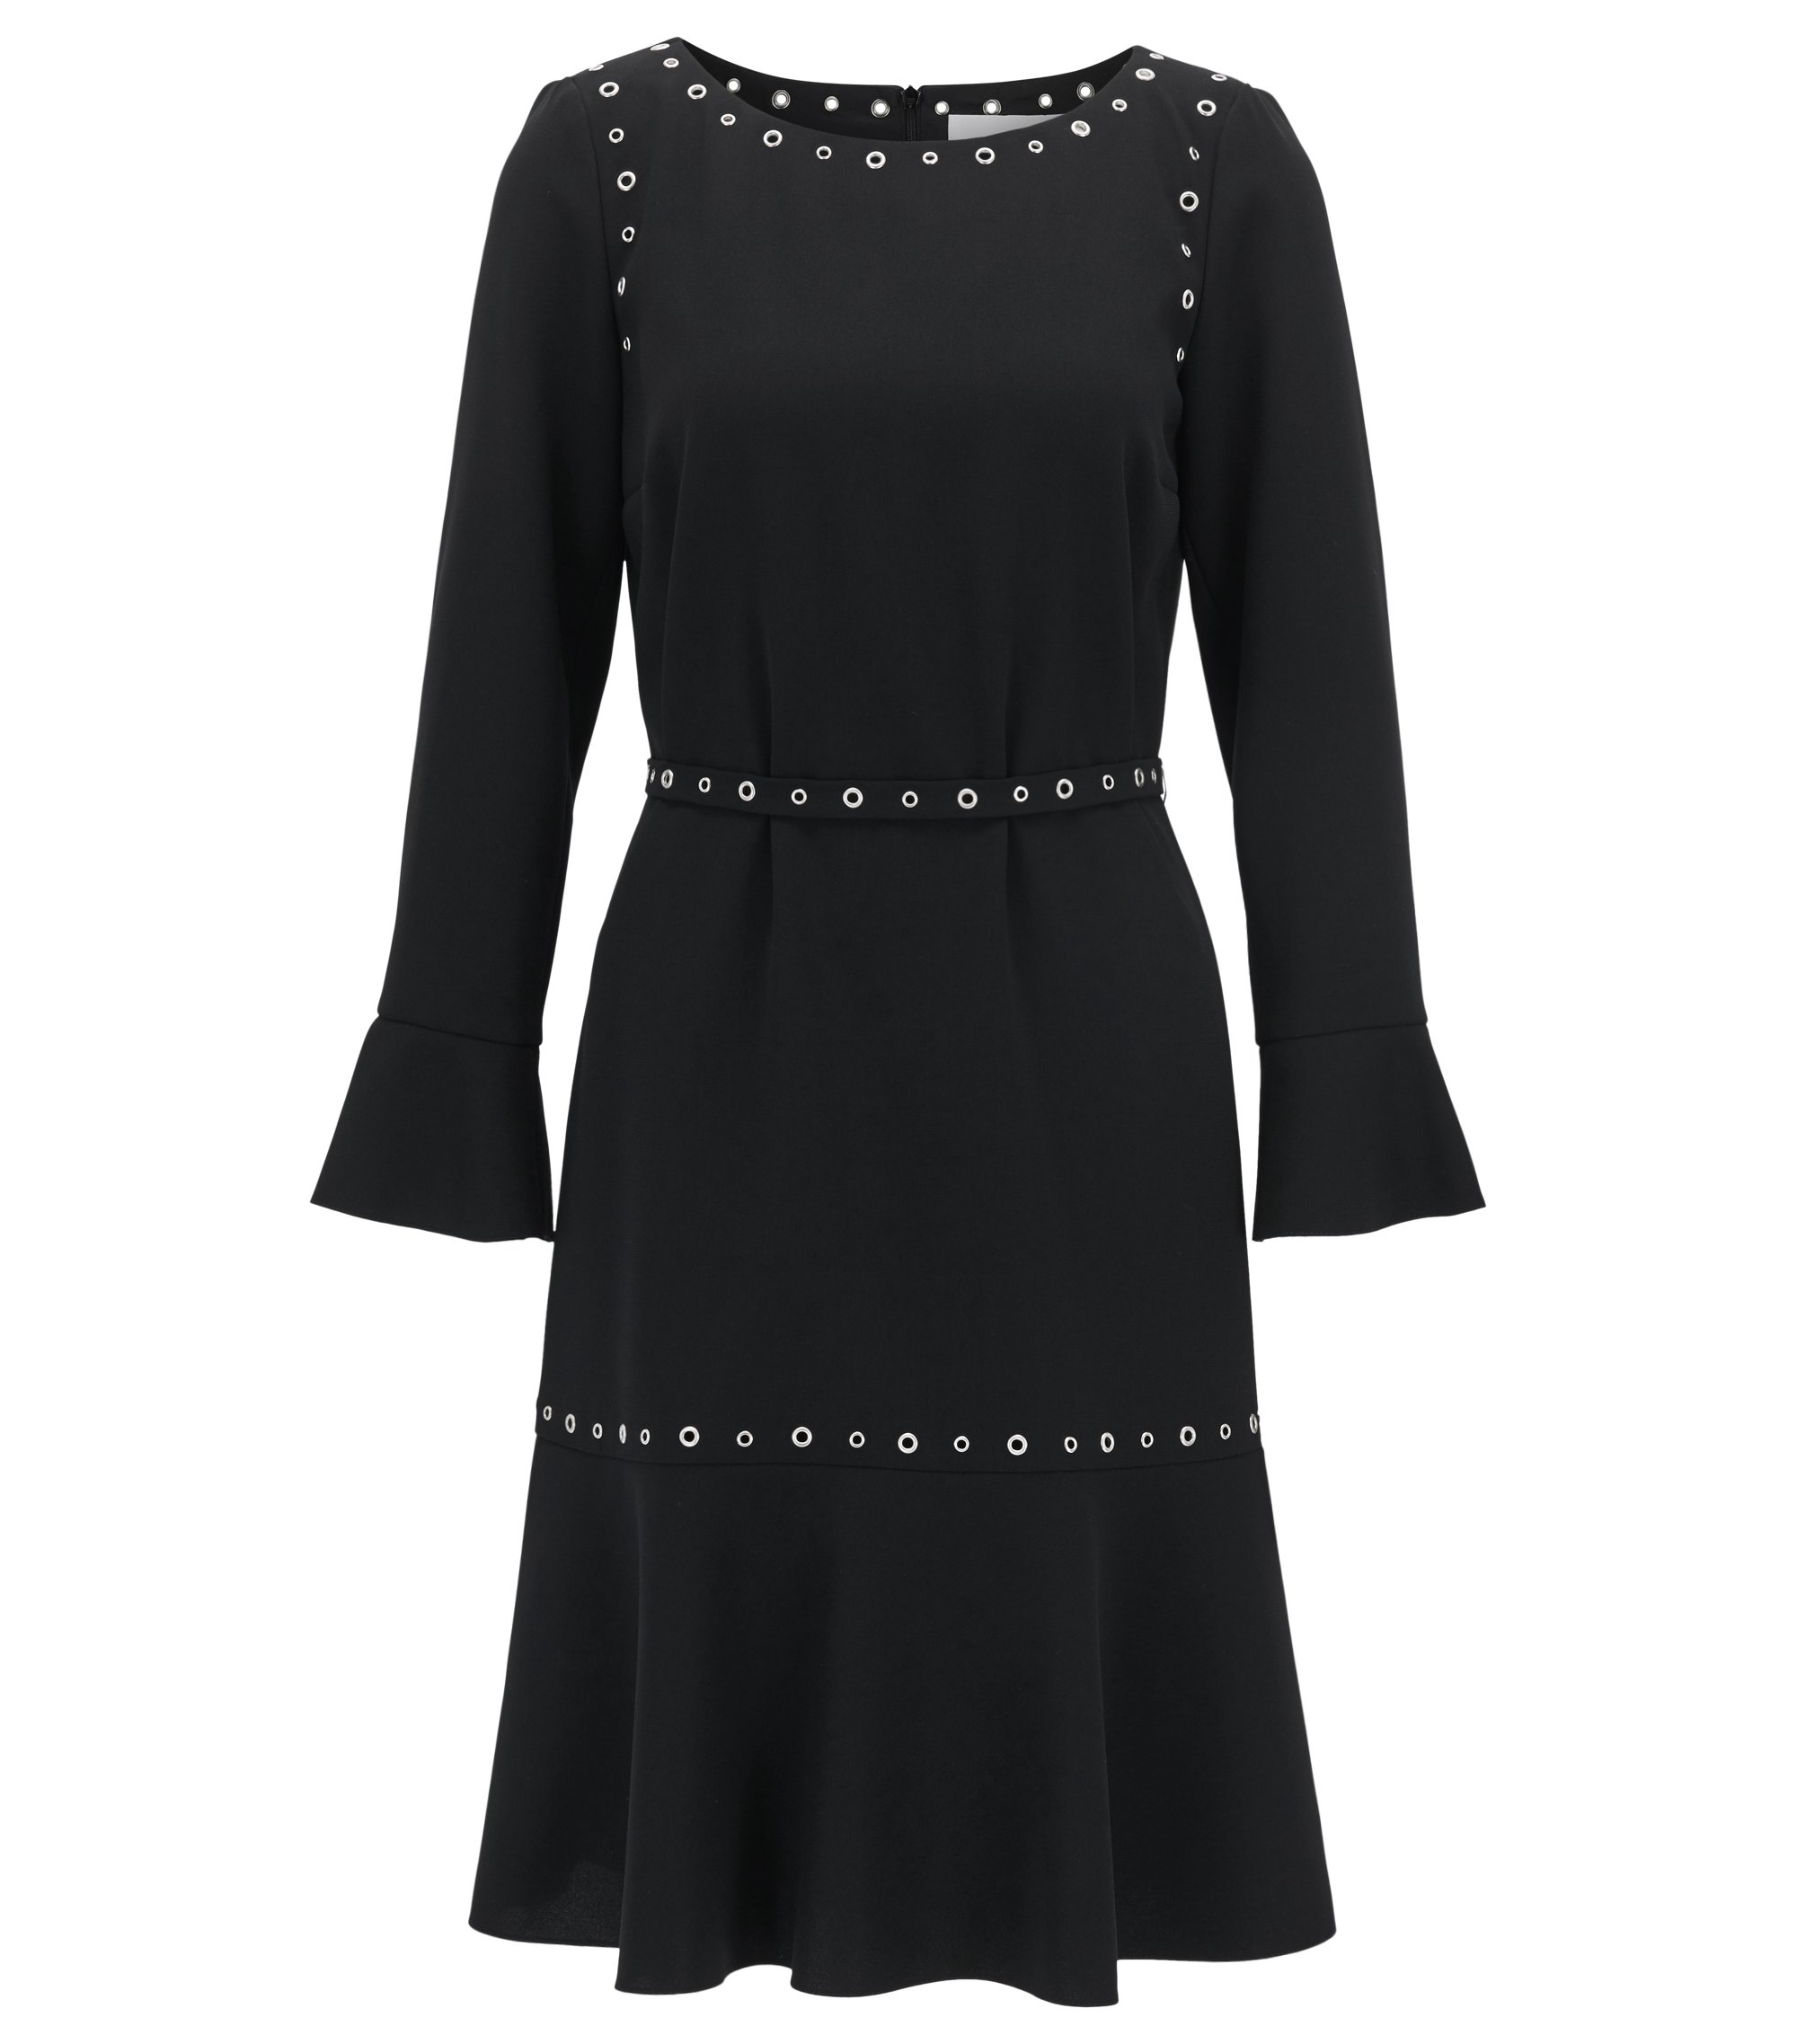 Long-sleeved crêpe dress with hardware details, Black